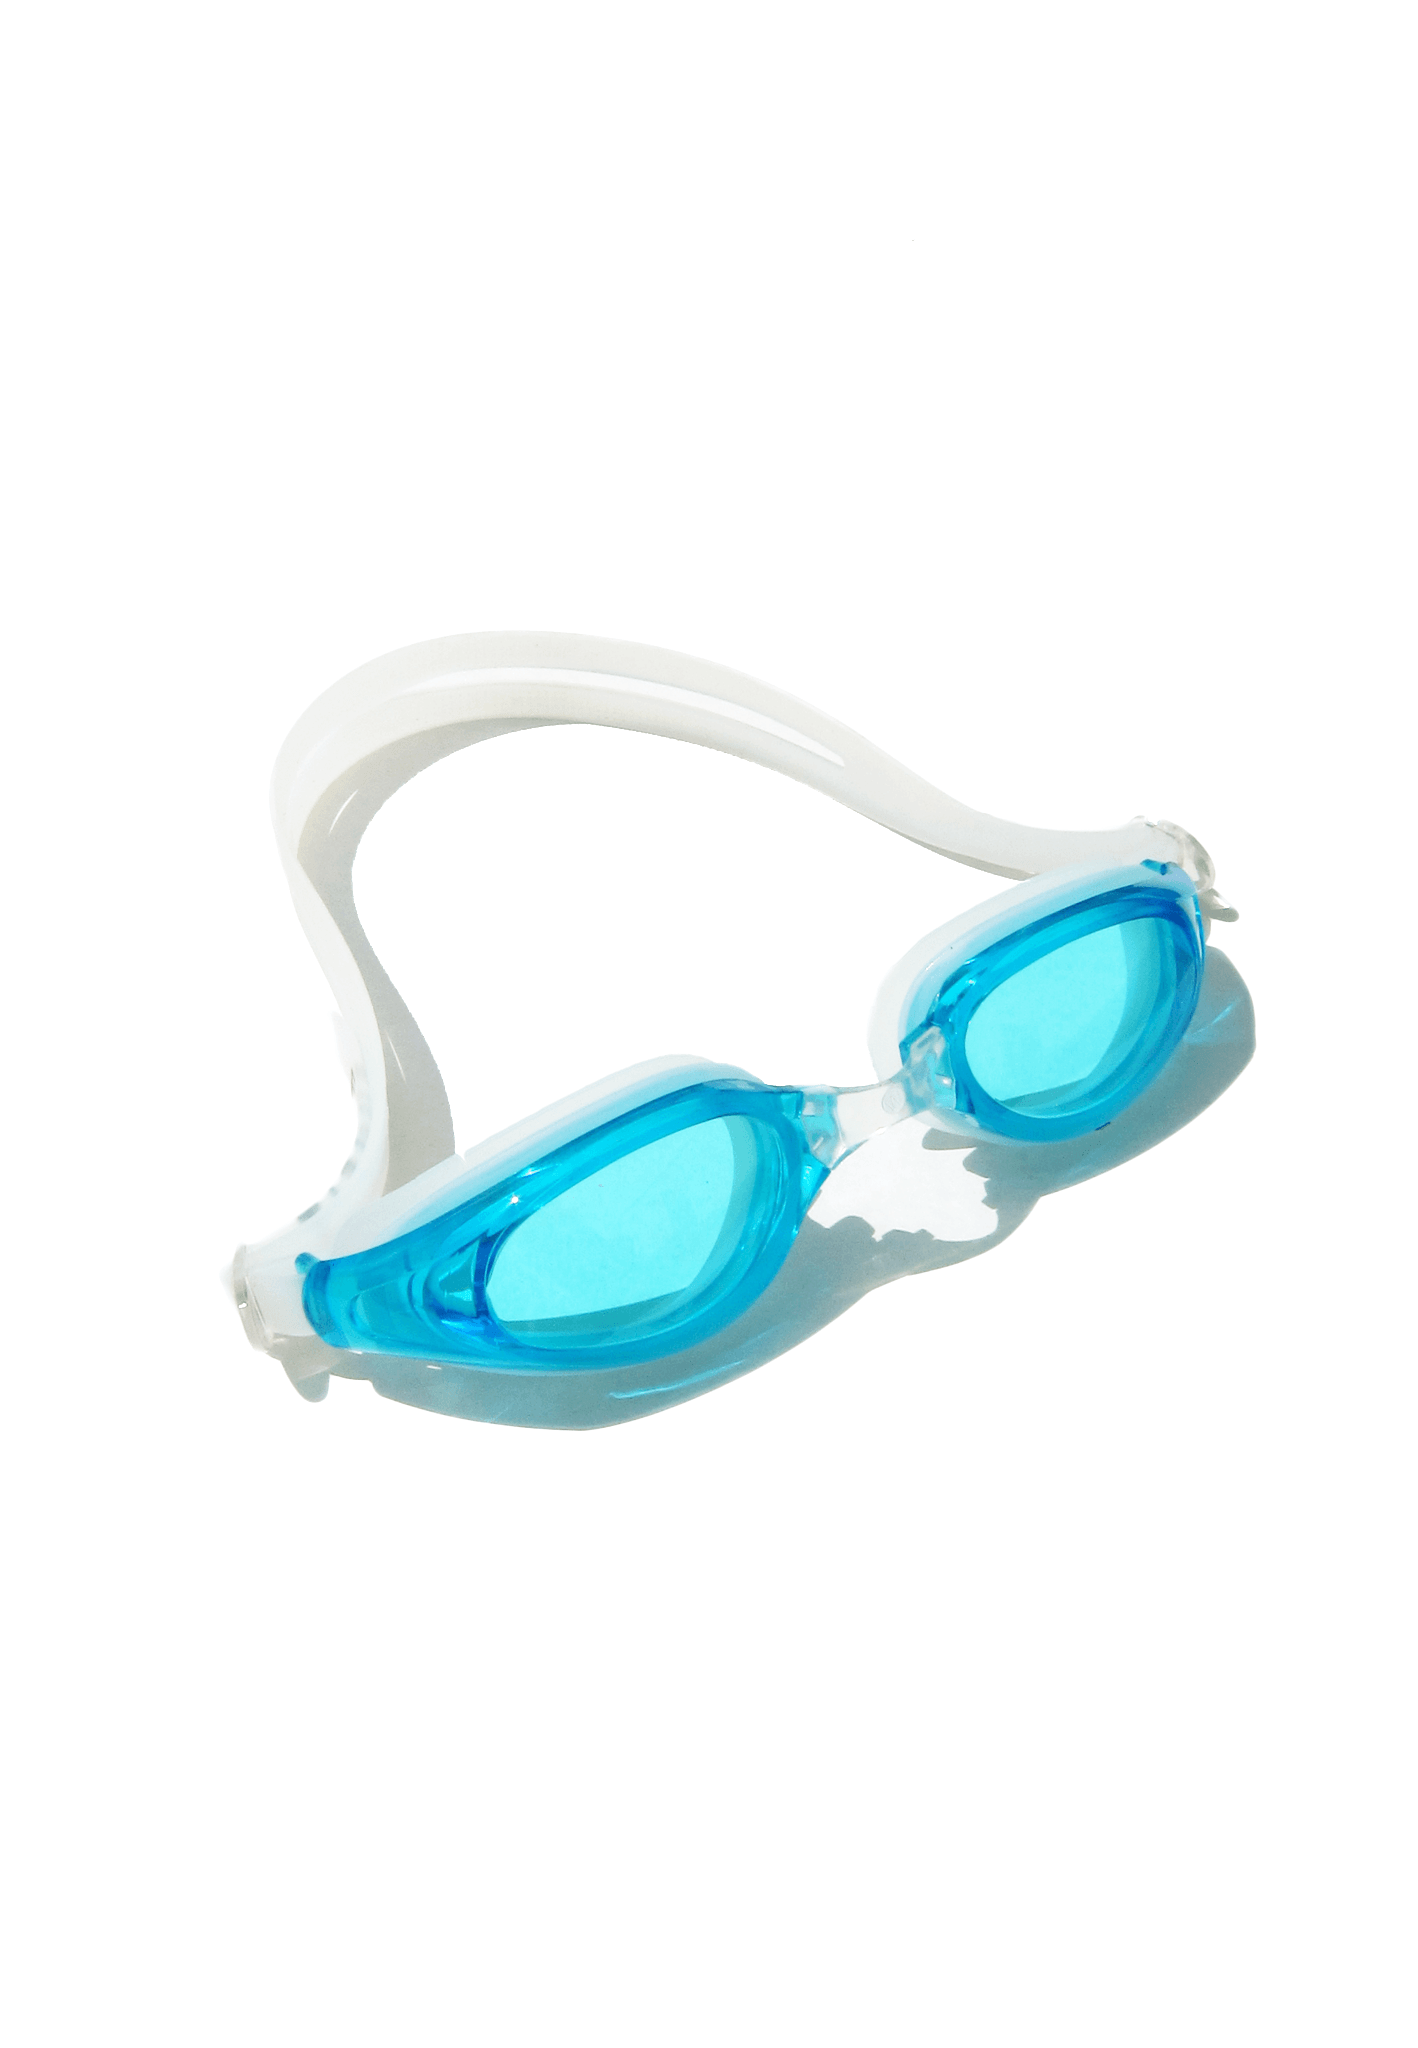 Leisure Wide-Framed Goggles (Turquoise)